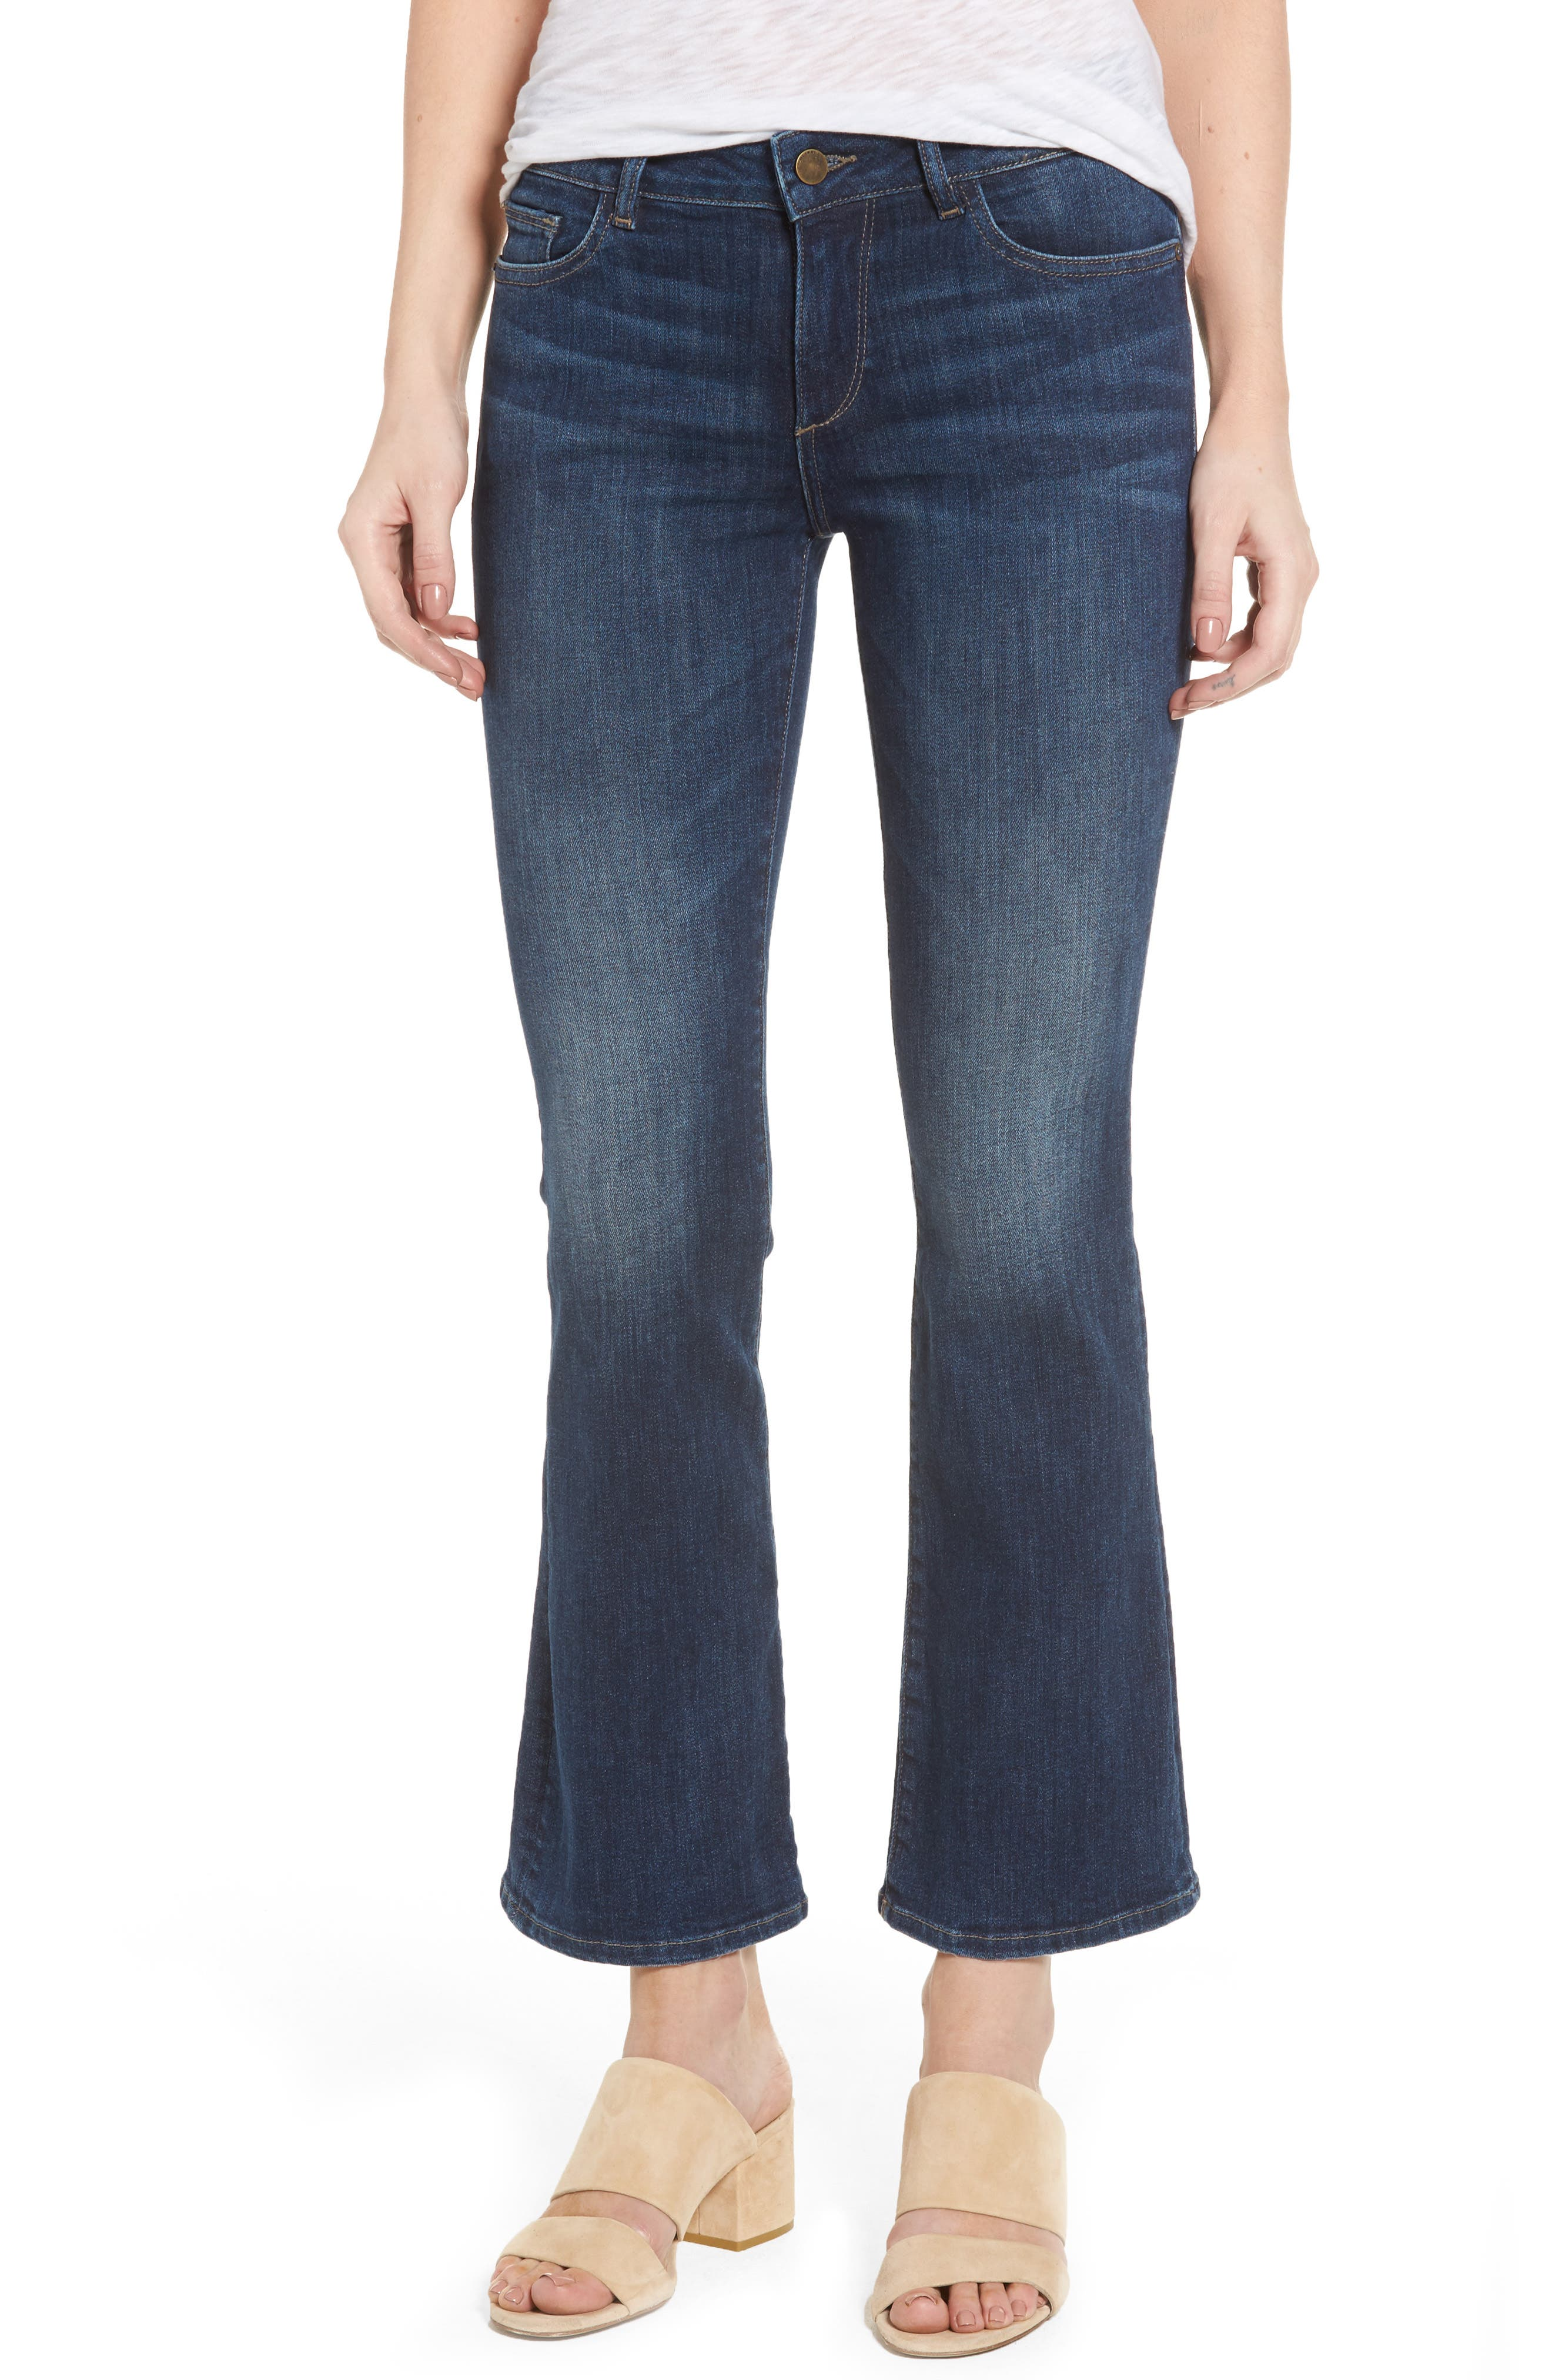 Alternate Image 1 Selected - DL1961 Abbey Bootcut Jeans (Maize)